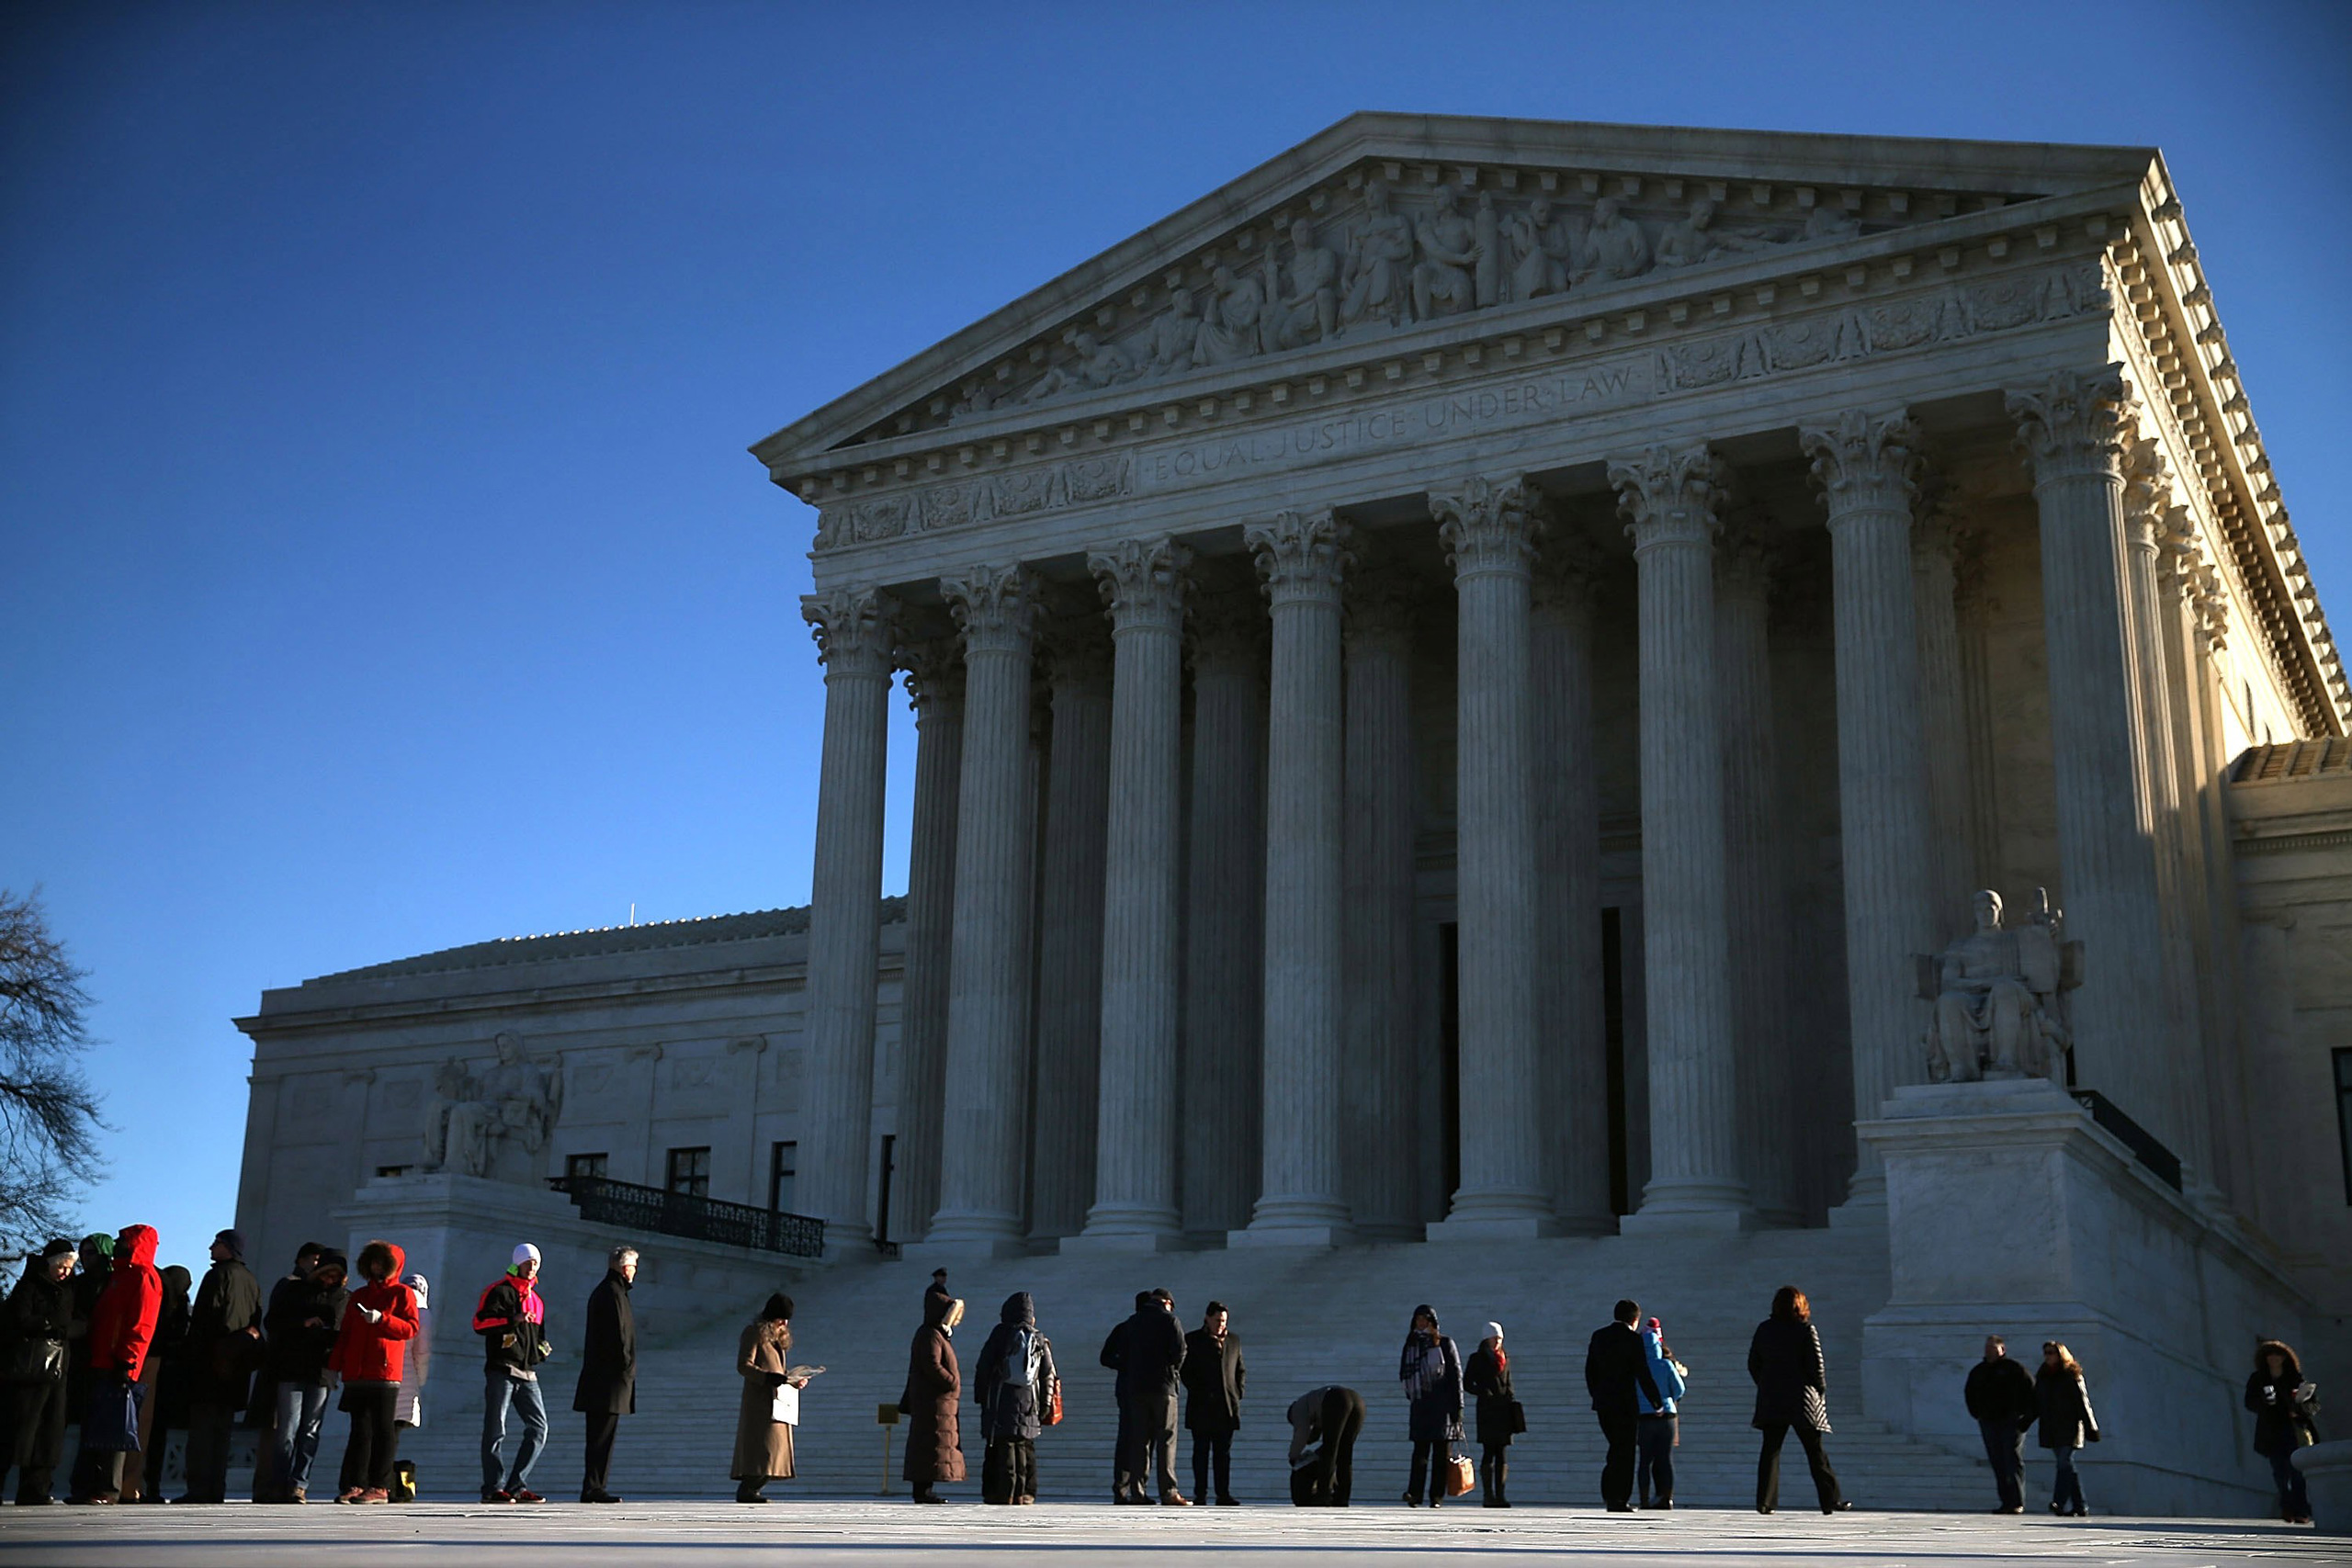 People wait in line to enter the US Supreme Court building in Washington on Jan. 11, 2016.